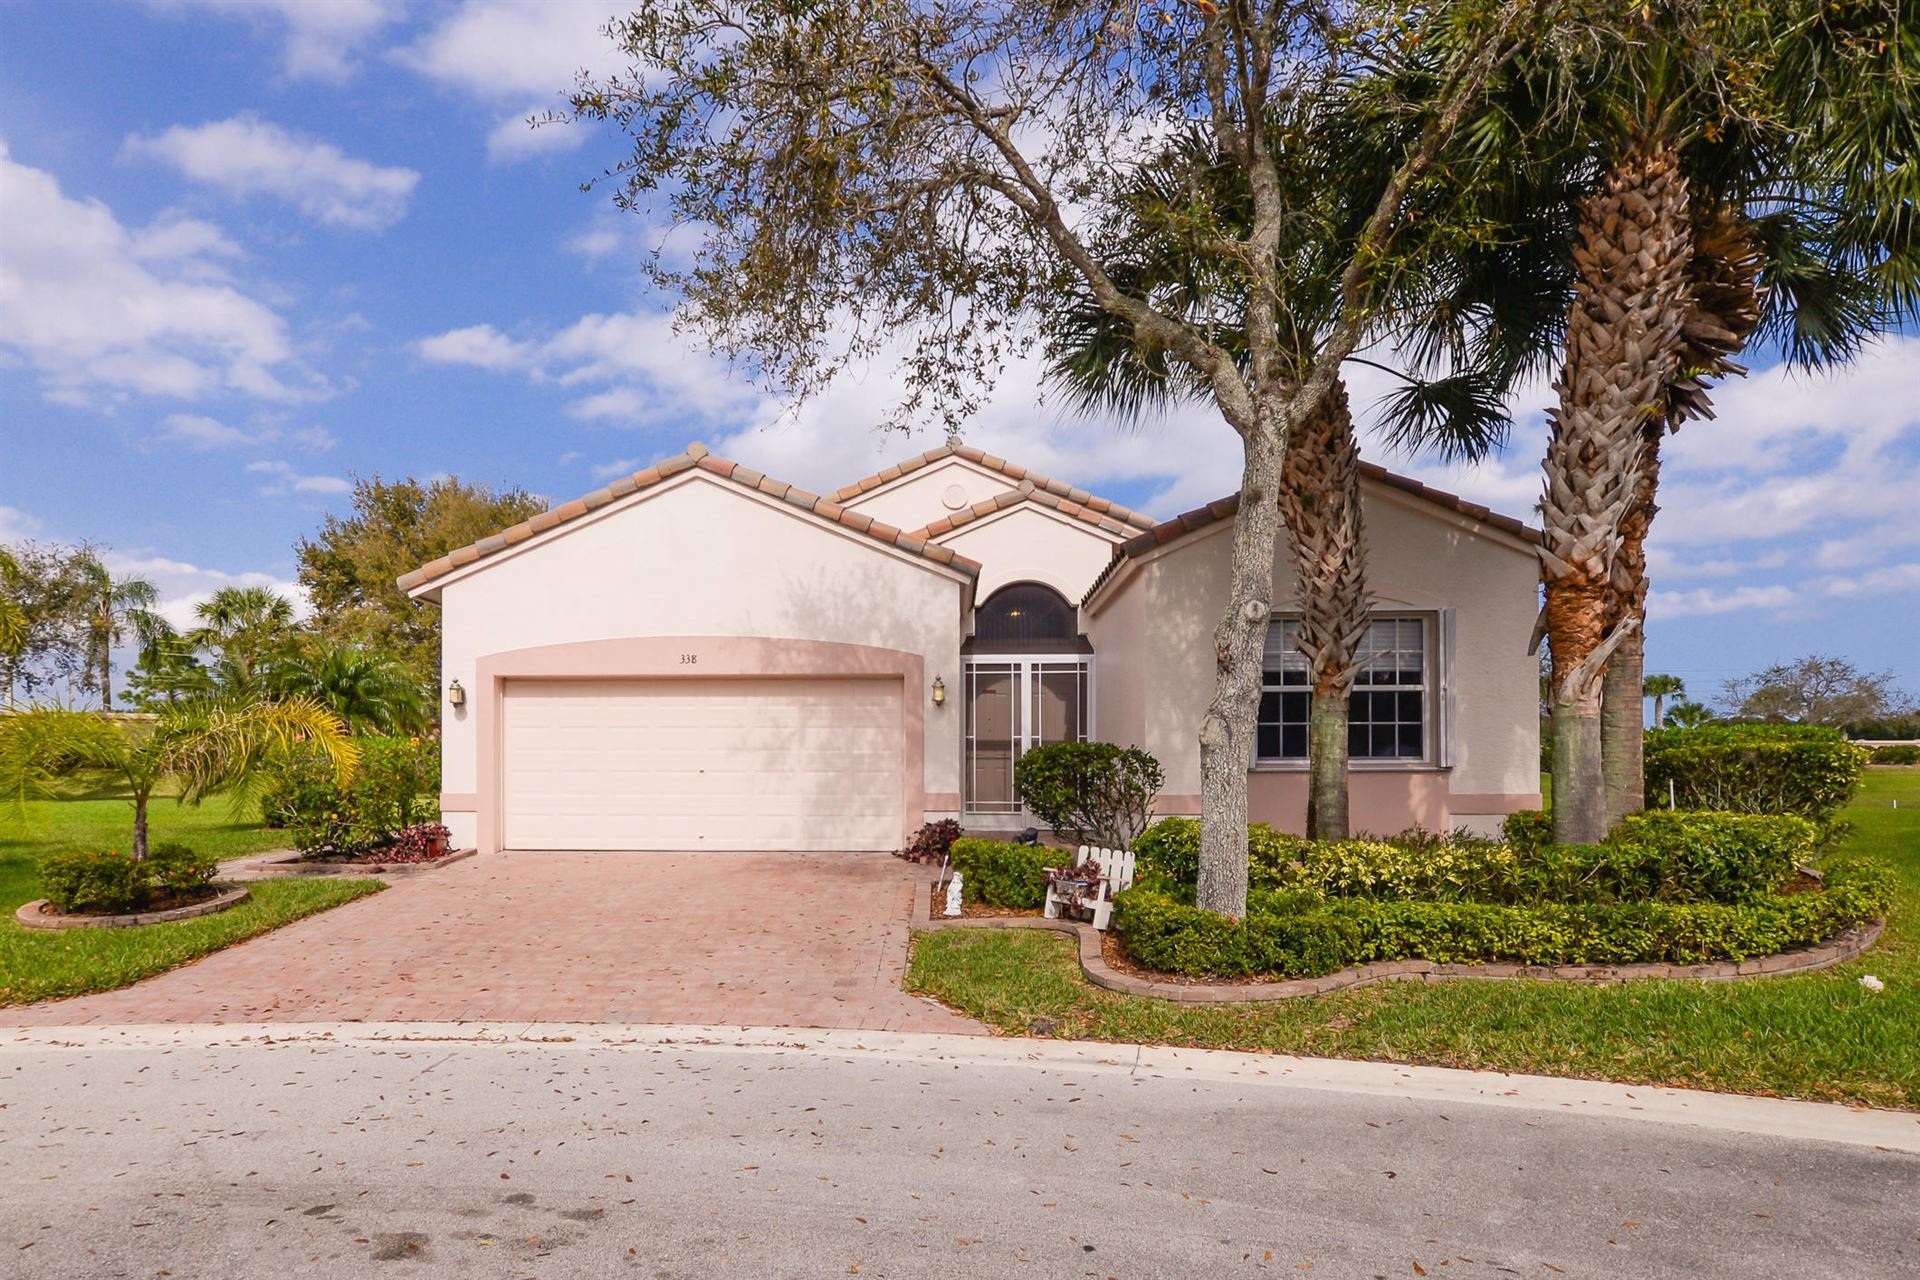 Photo of 338 NW Millpond Lane, Port Saint Lucie, FL 34986 (MLS # RX-10695259)